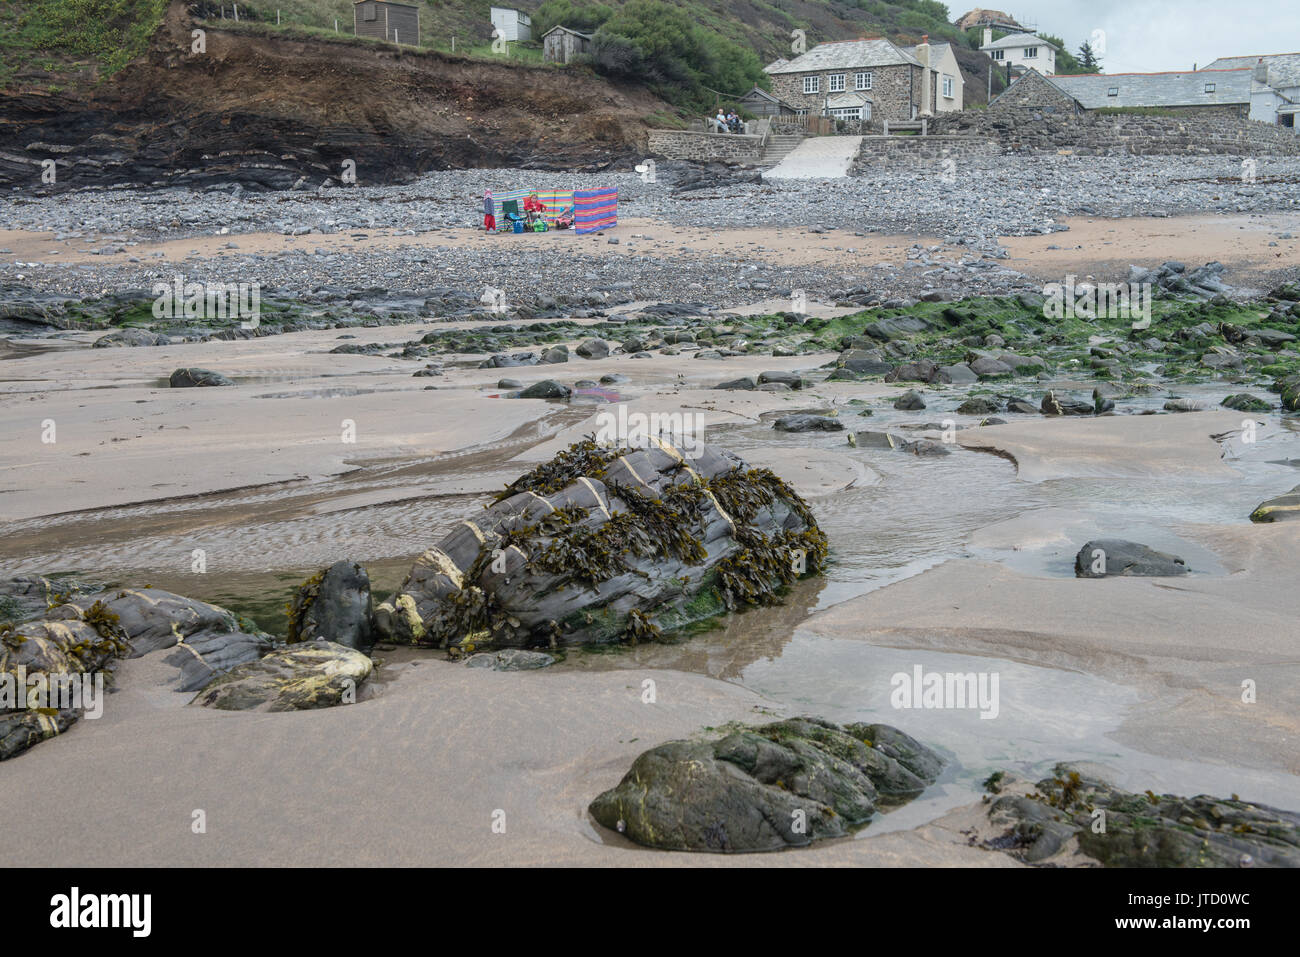 Beach and rock formations at Crackington Haven, Cornwall, England, United Kingdom. - Stock Image